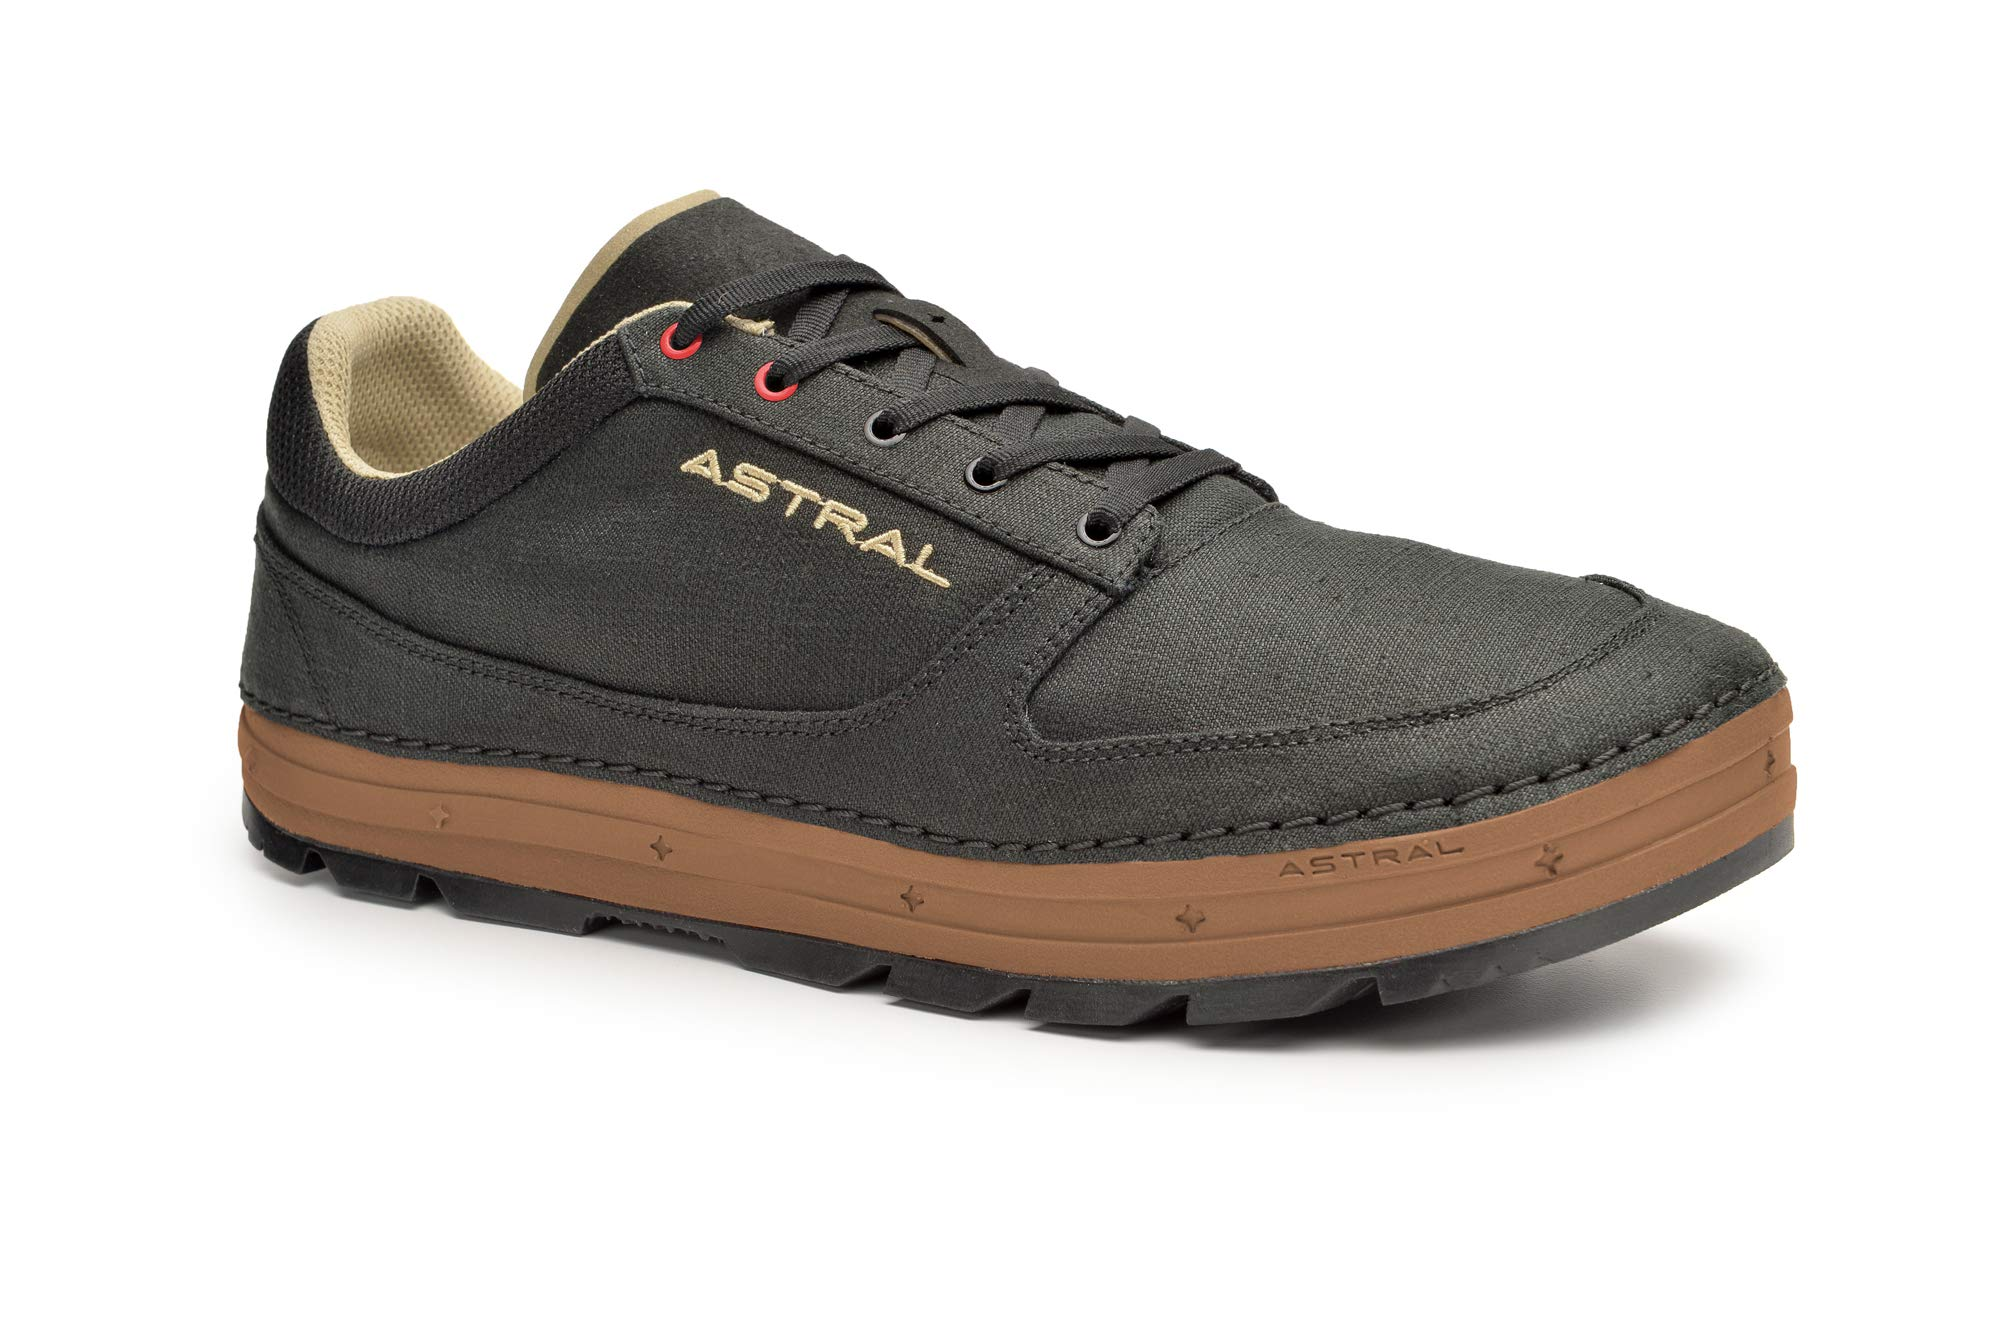 Astral Men's Hemp Donner Casual Minimalist Shoes, Breathable and Lightweight, Made for Outdoor Activities and Travel, Black Brown, 10.5 M US